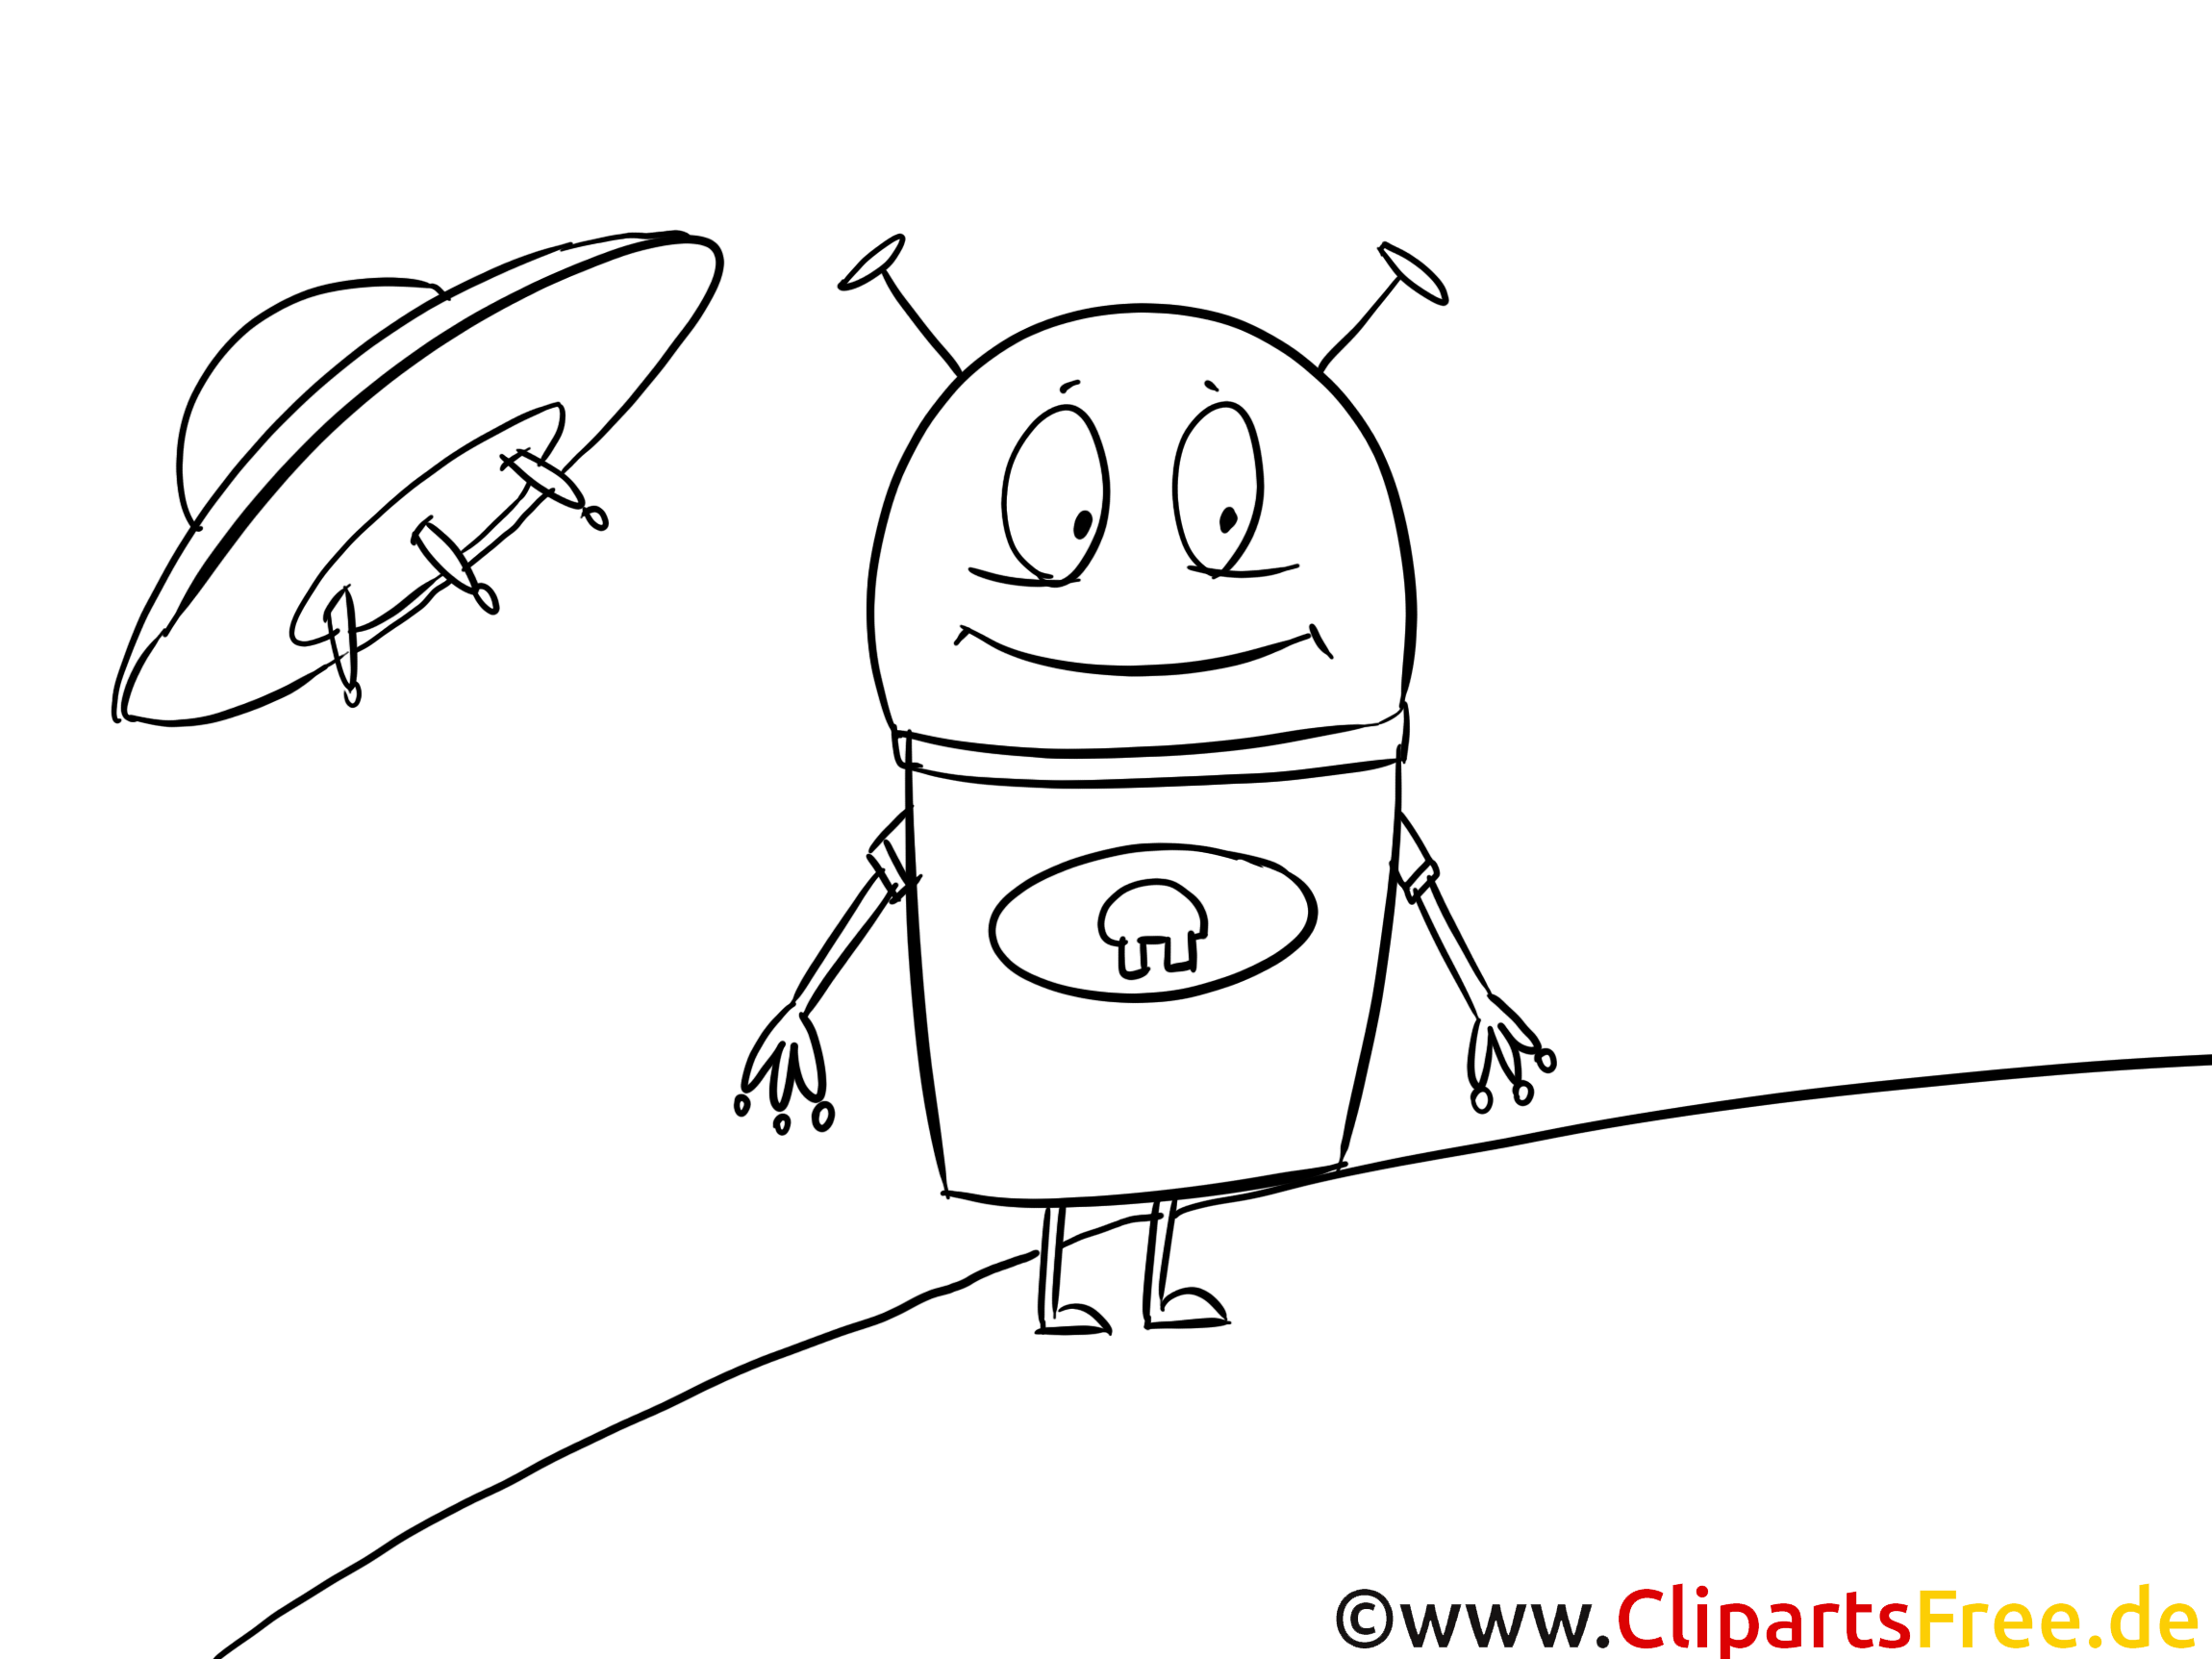 Cartoon Alien Bild zum Ausmalen